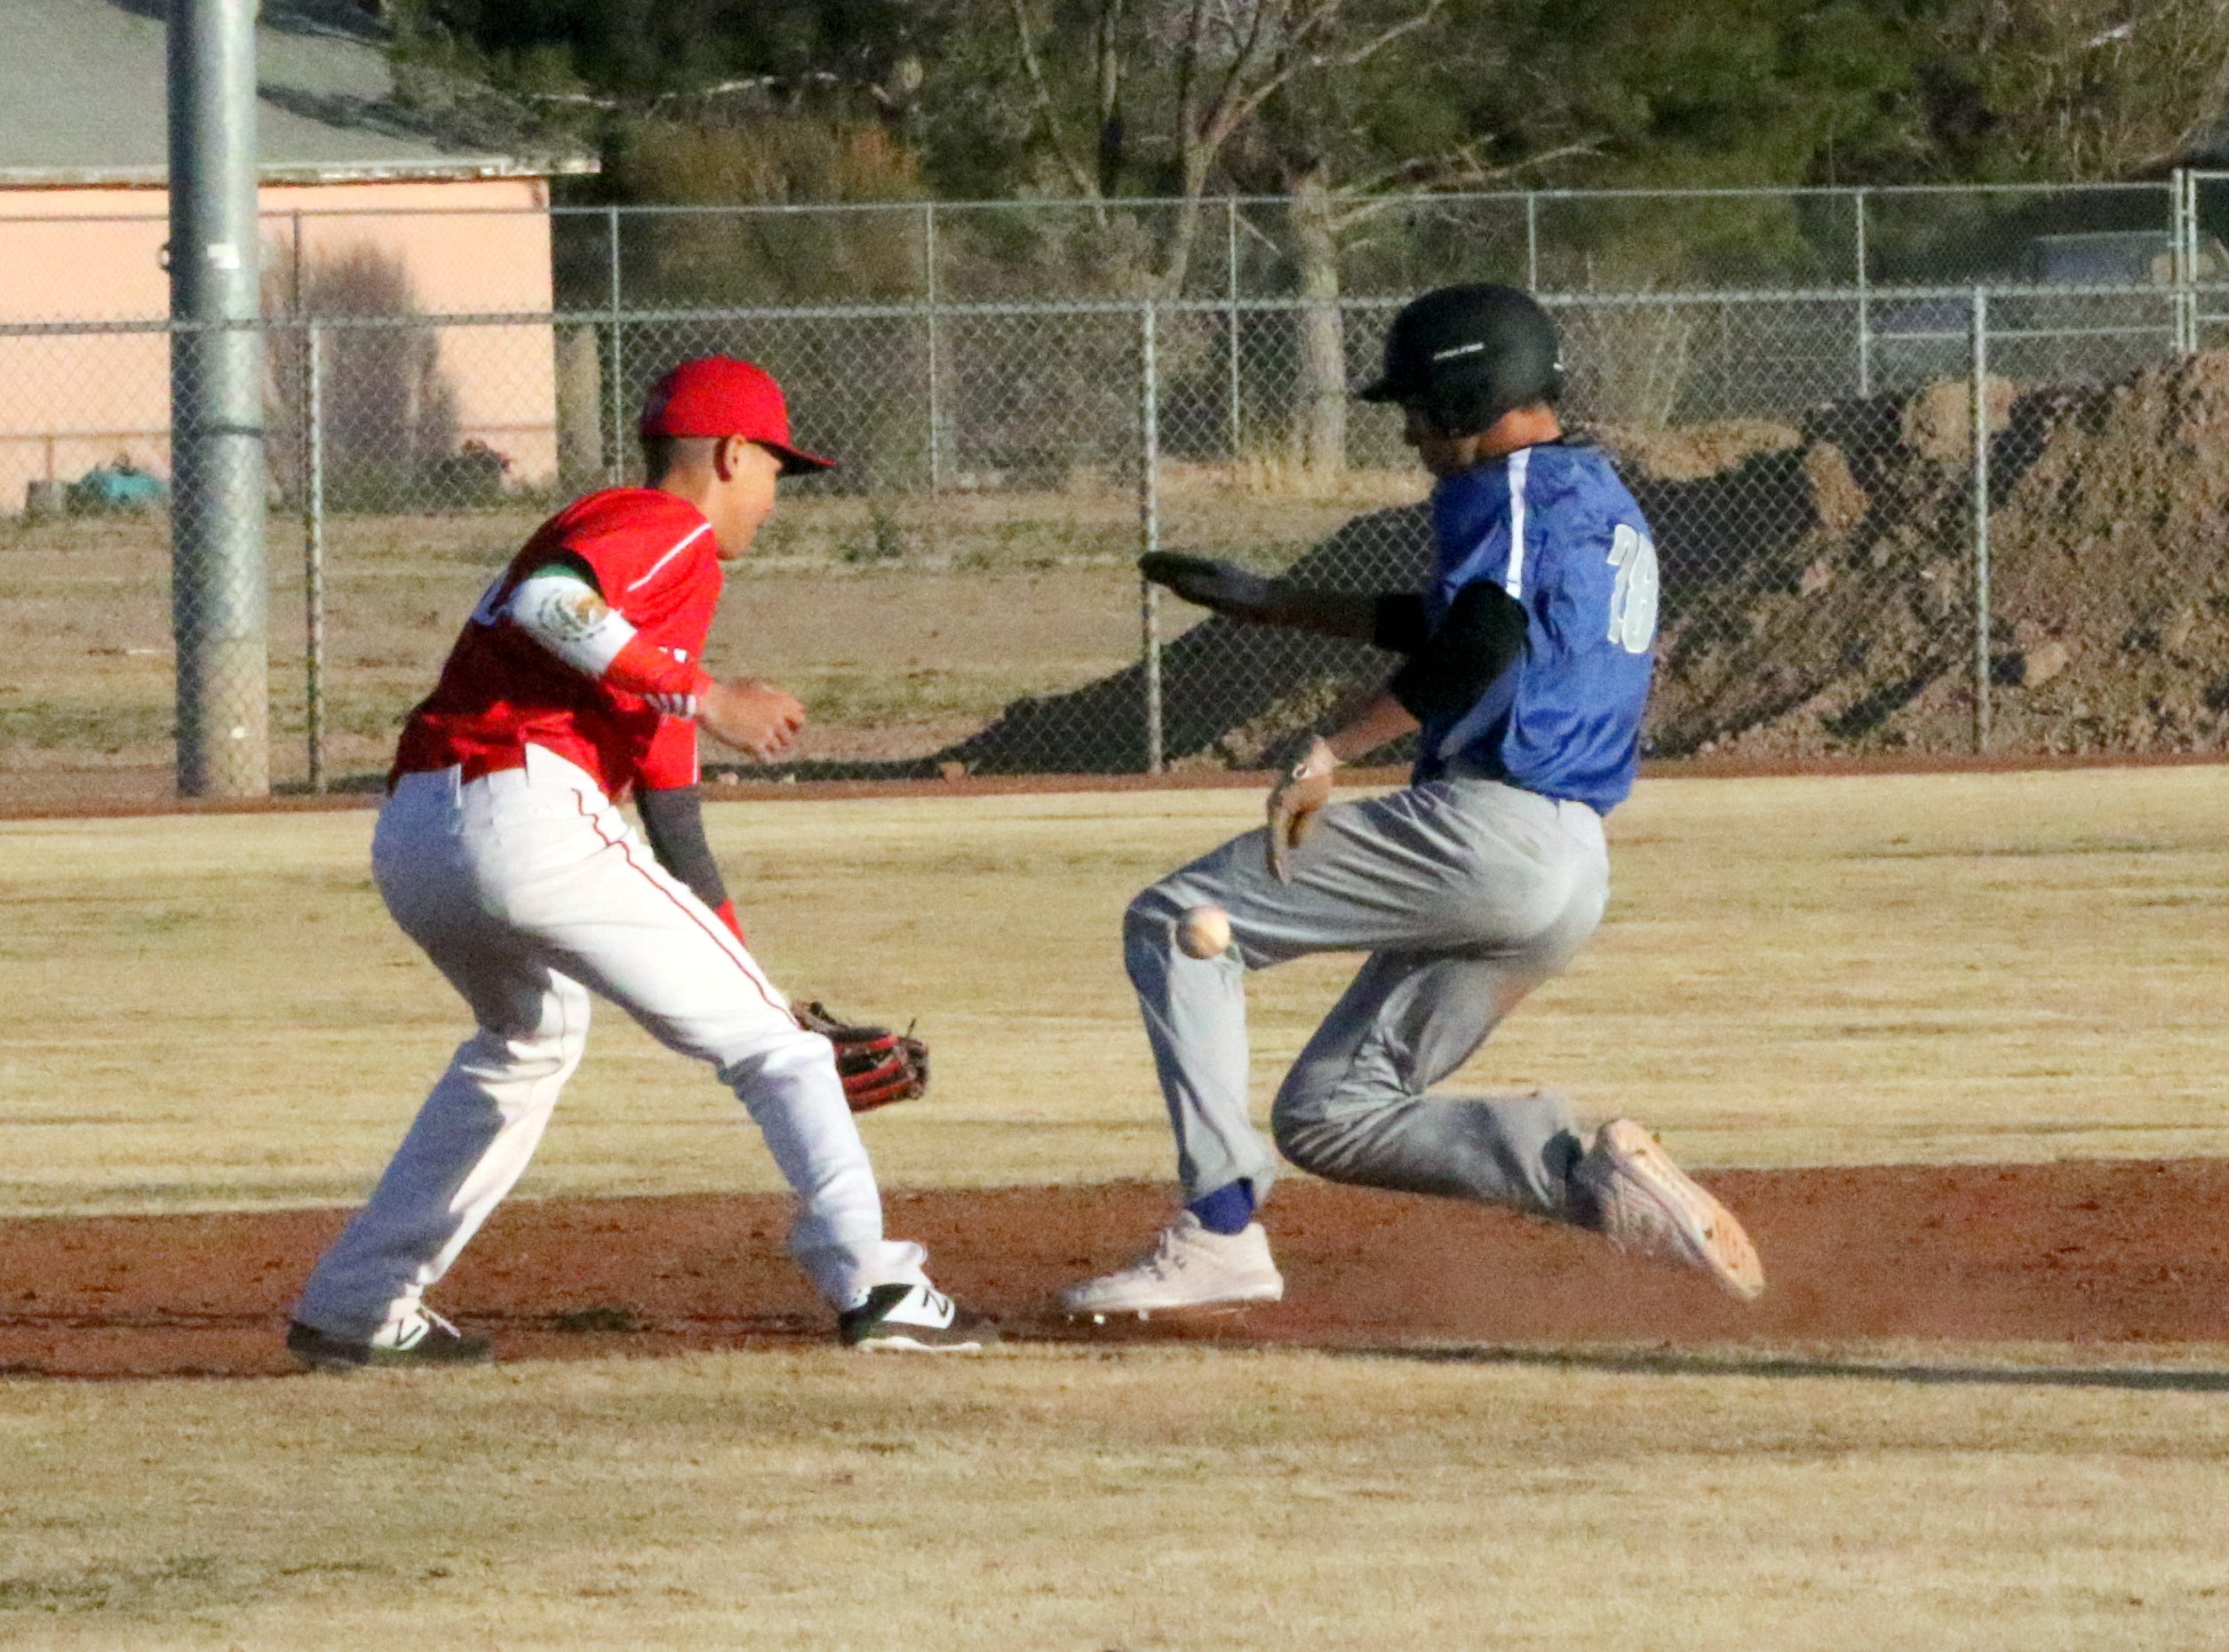 Photo highlights from Game 1 of a doubleheader between Loving and Carlsbad's C-team on March 5, 2019.